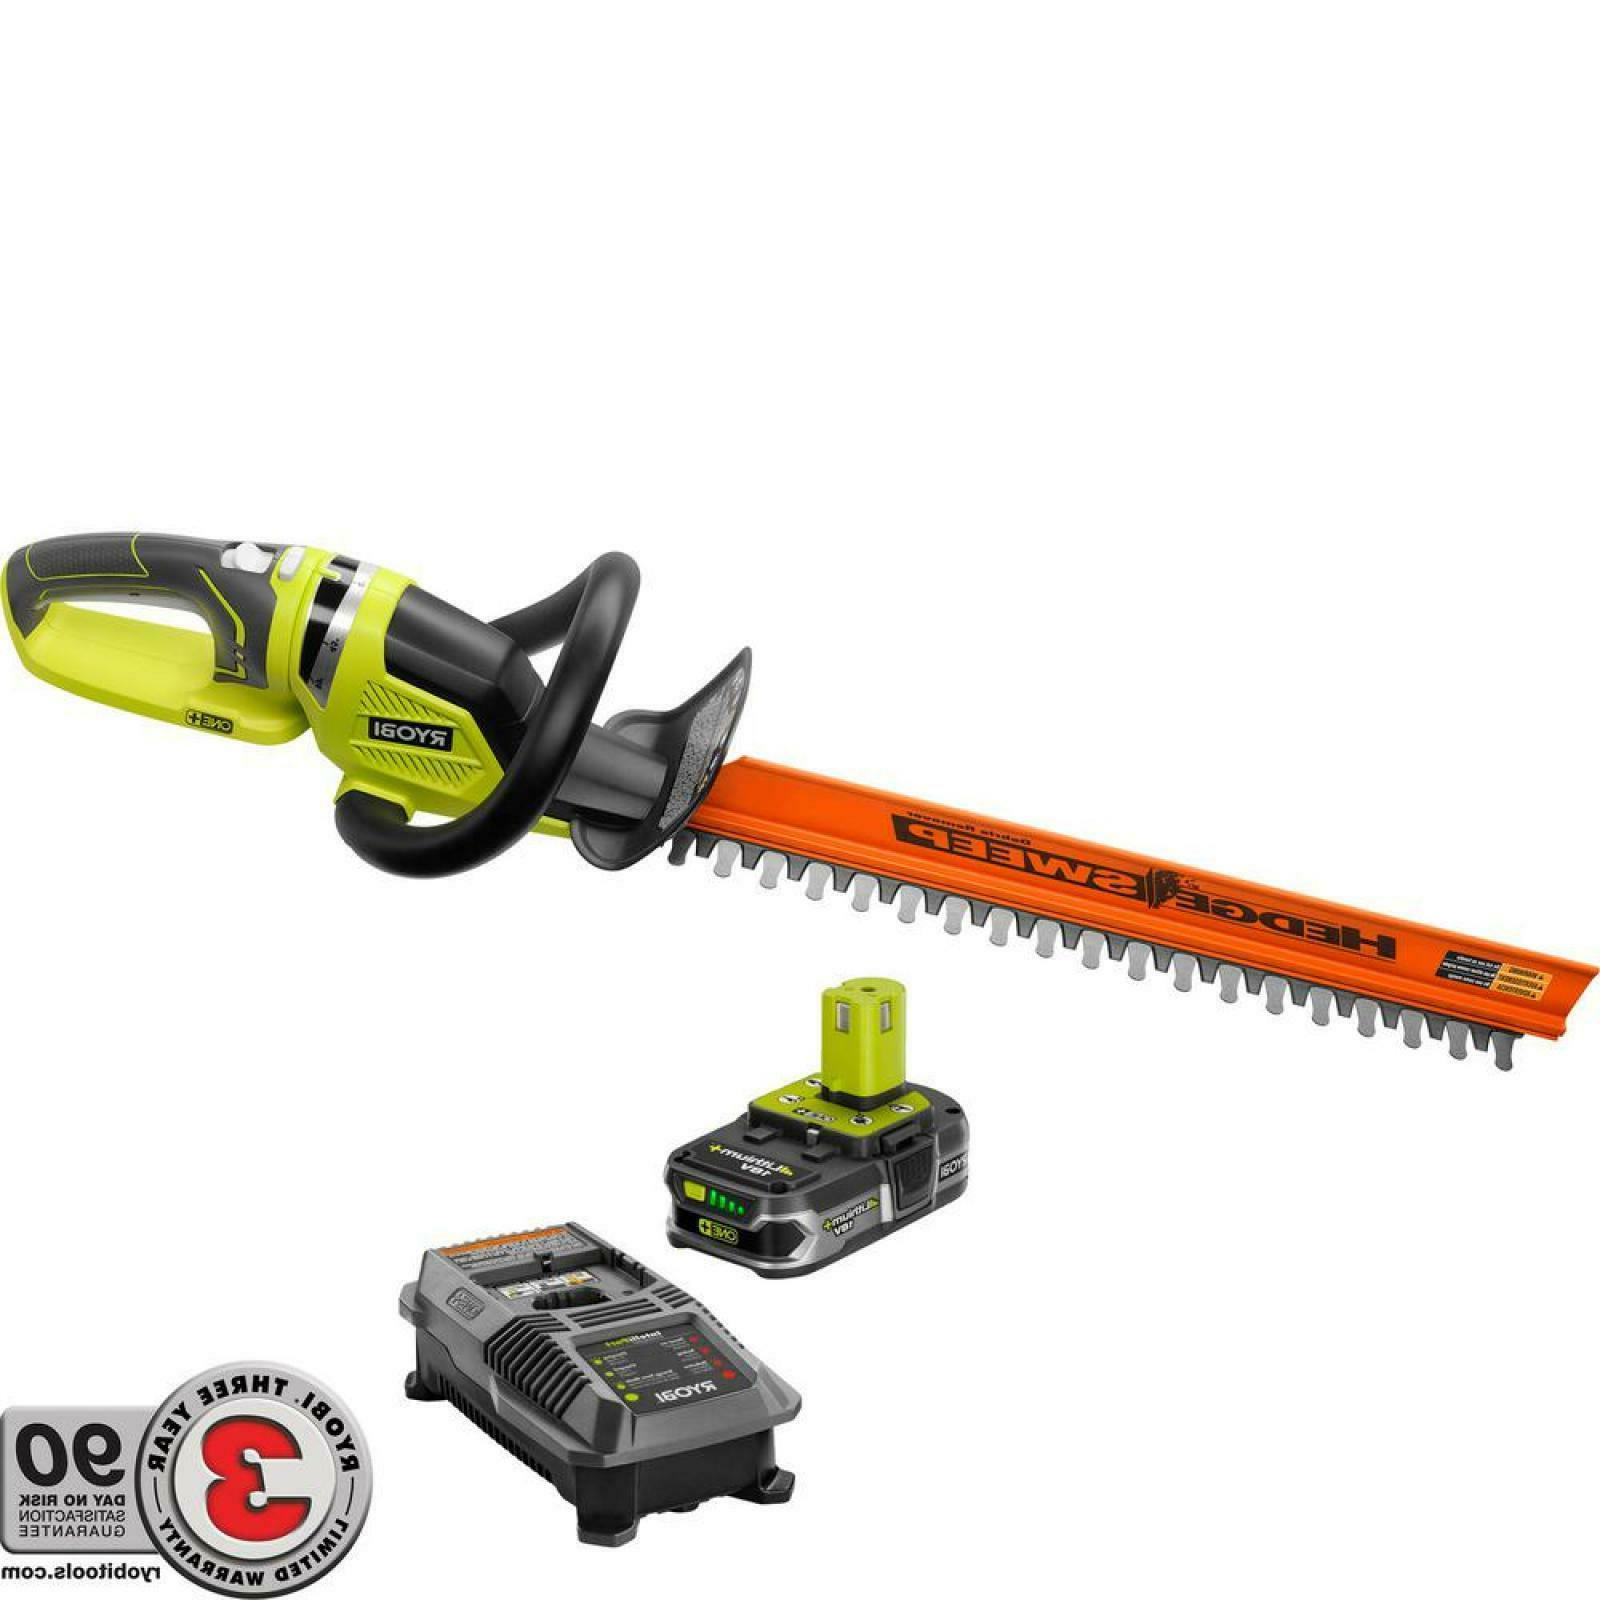 Cordless Hedge in. Lithium-Ion Dual-Action Blades Lawn